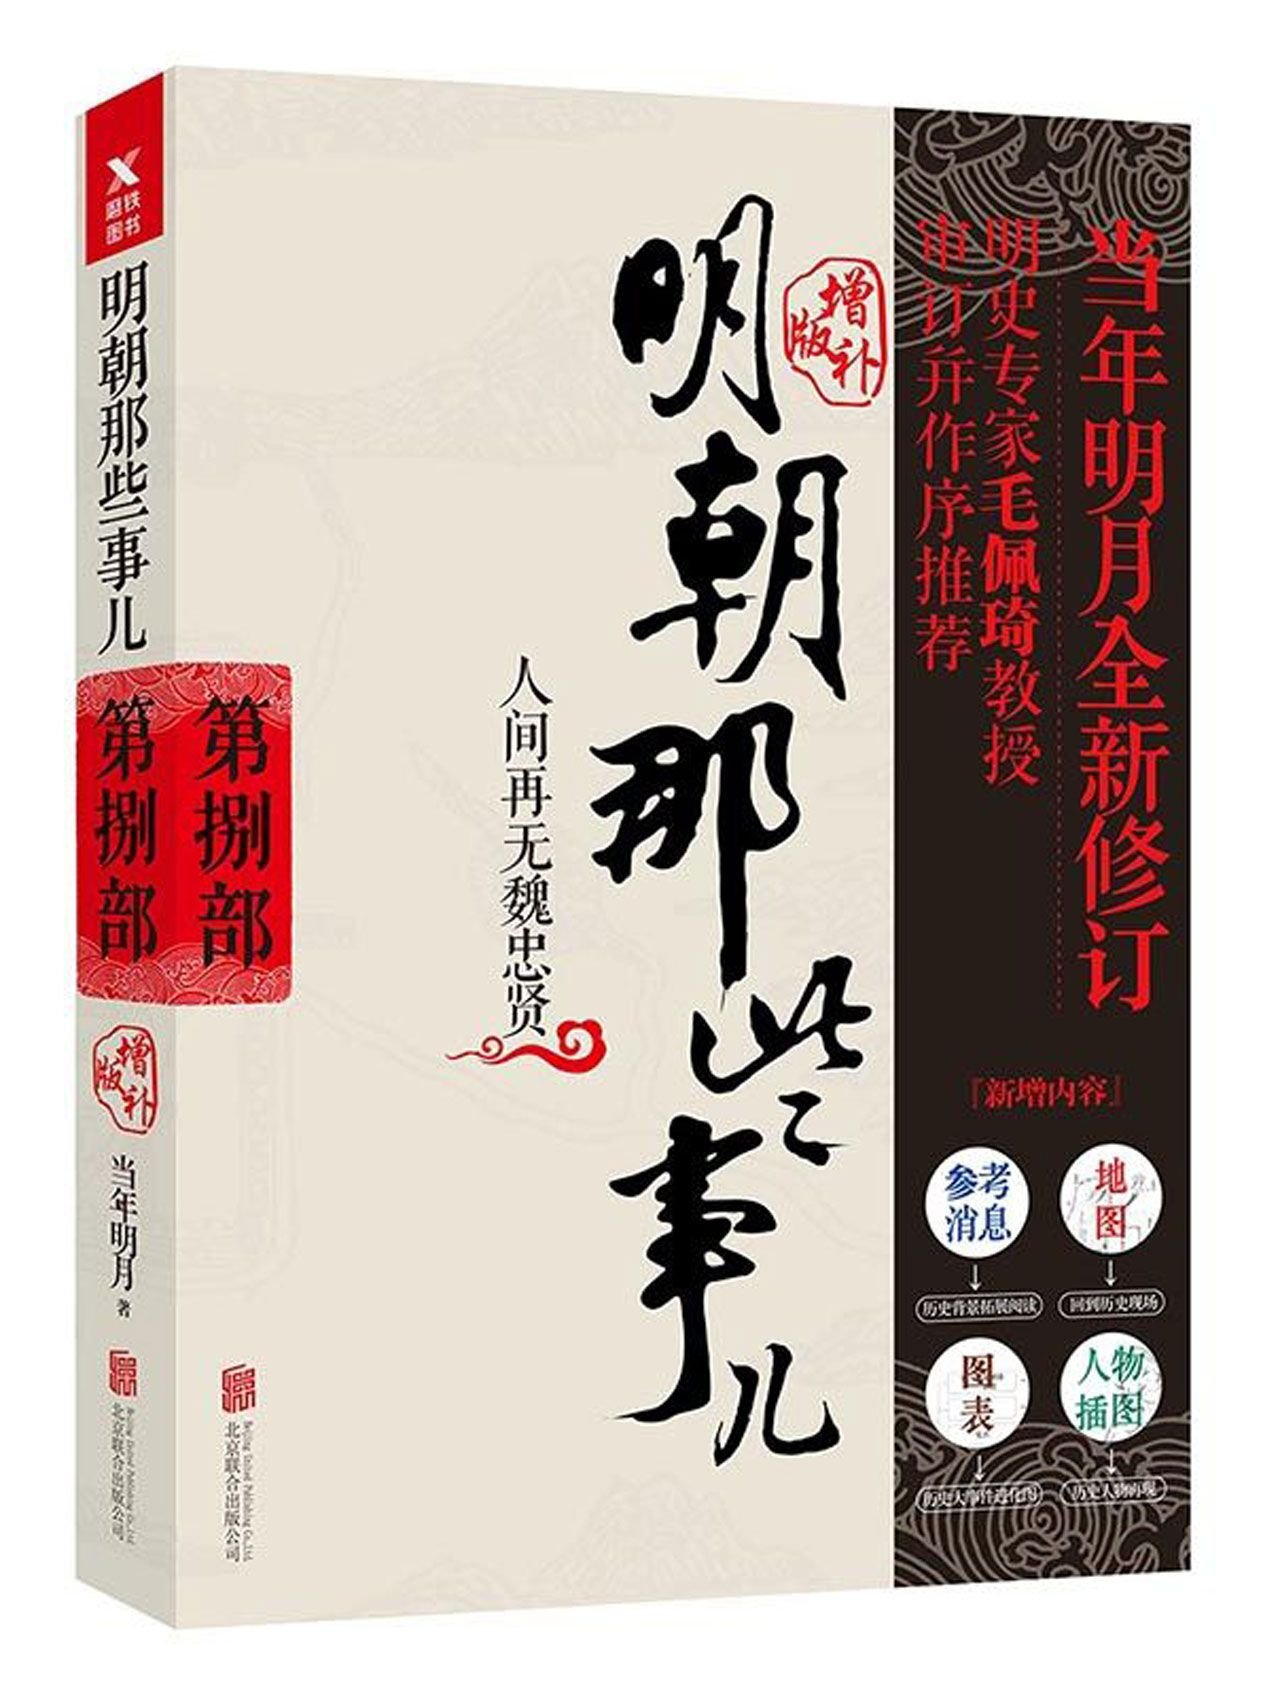 Download Events in Ming Dynasty-Part 8 There Will NOT Be Another WEI Zhongxian (Enlarged Edition) (Chinese Edition) PDF